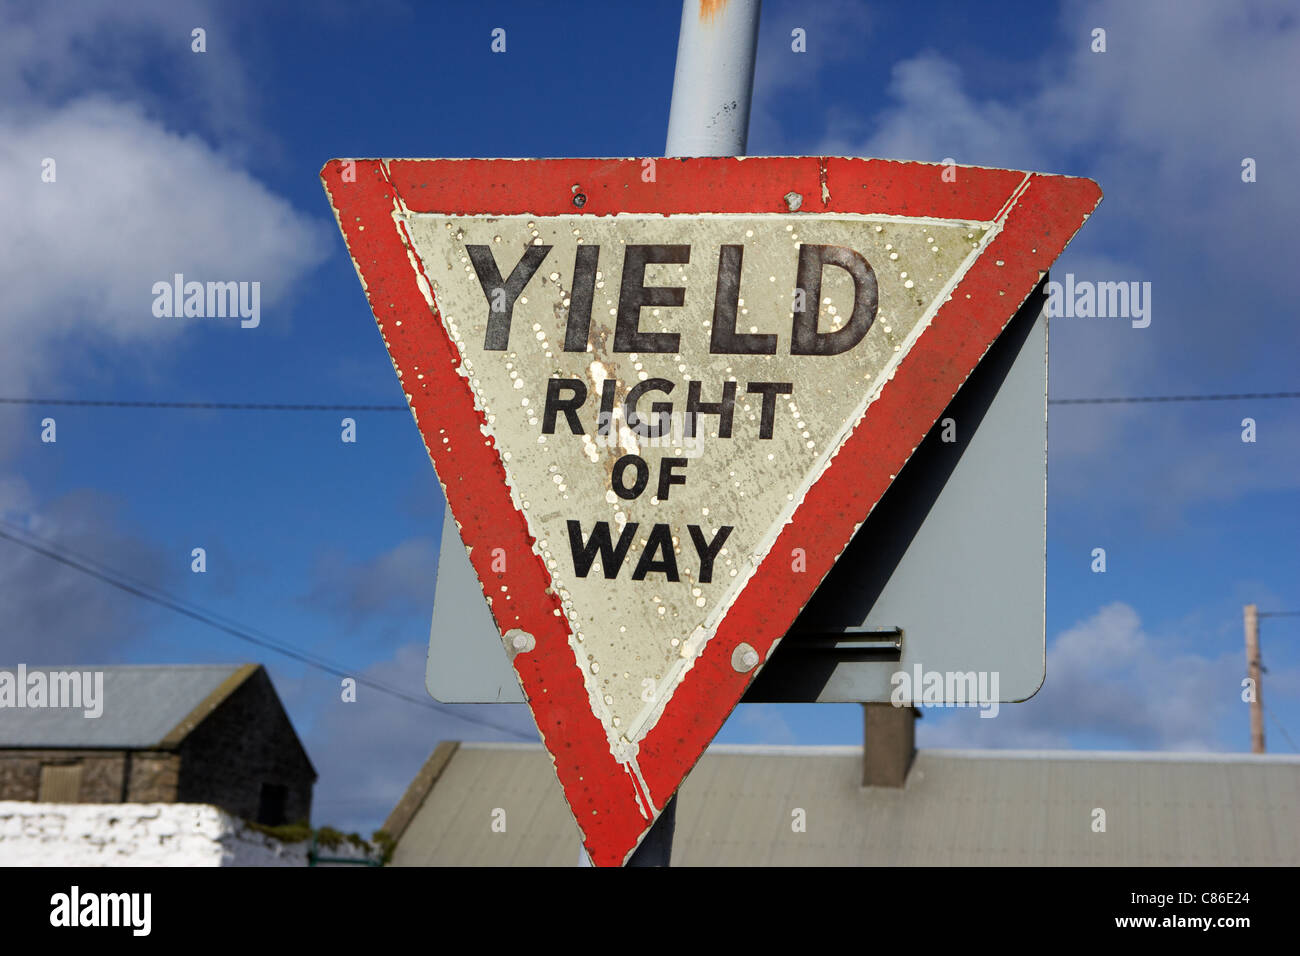 old irish red triangle yield right of way sign in rural ireland - Stock Image